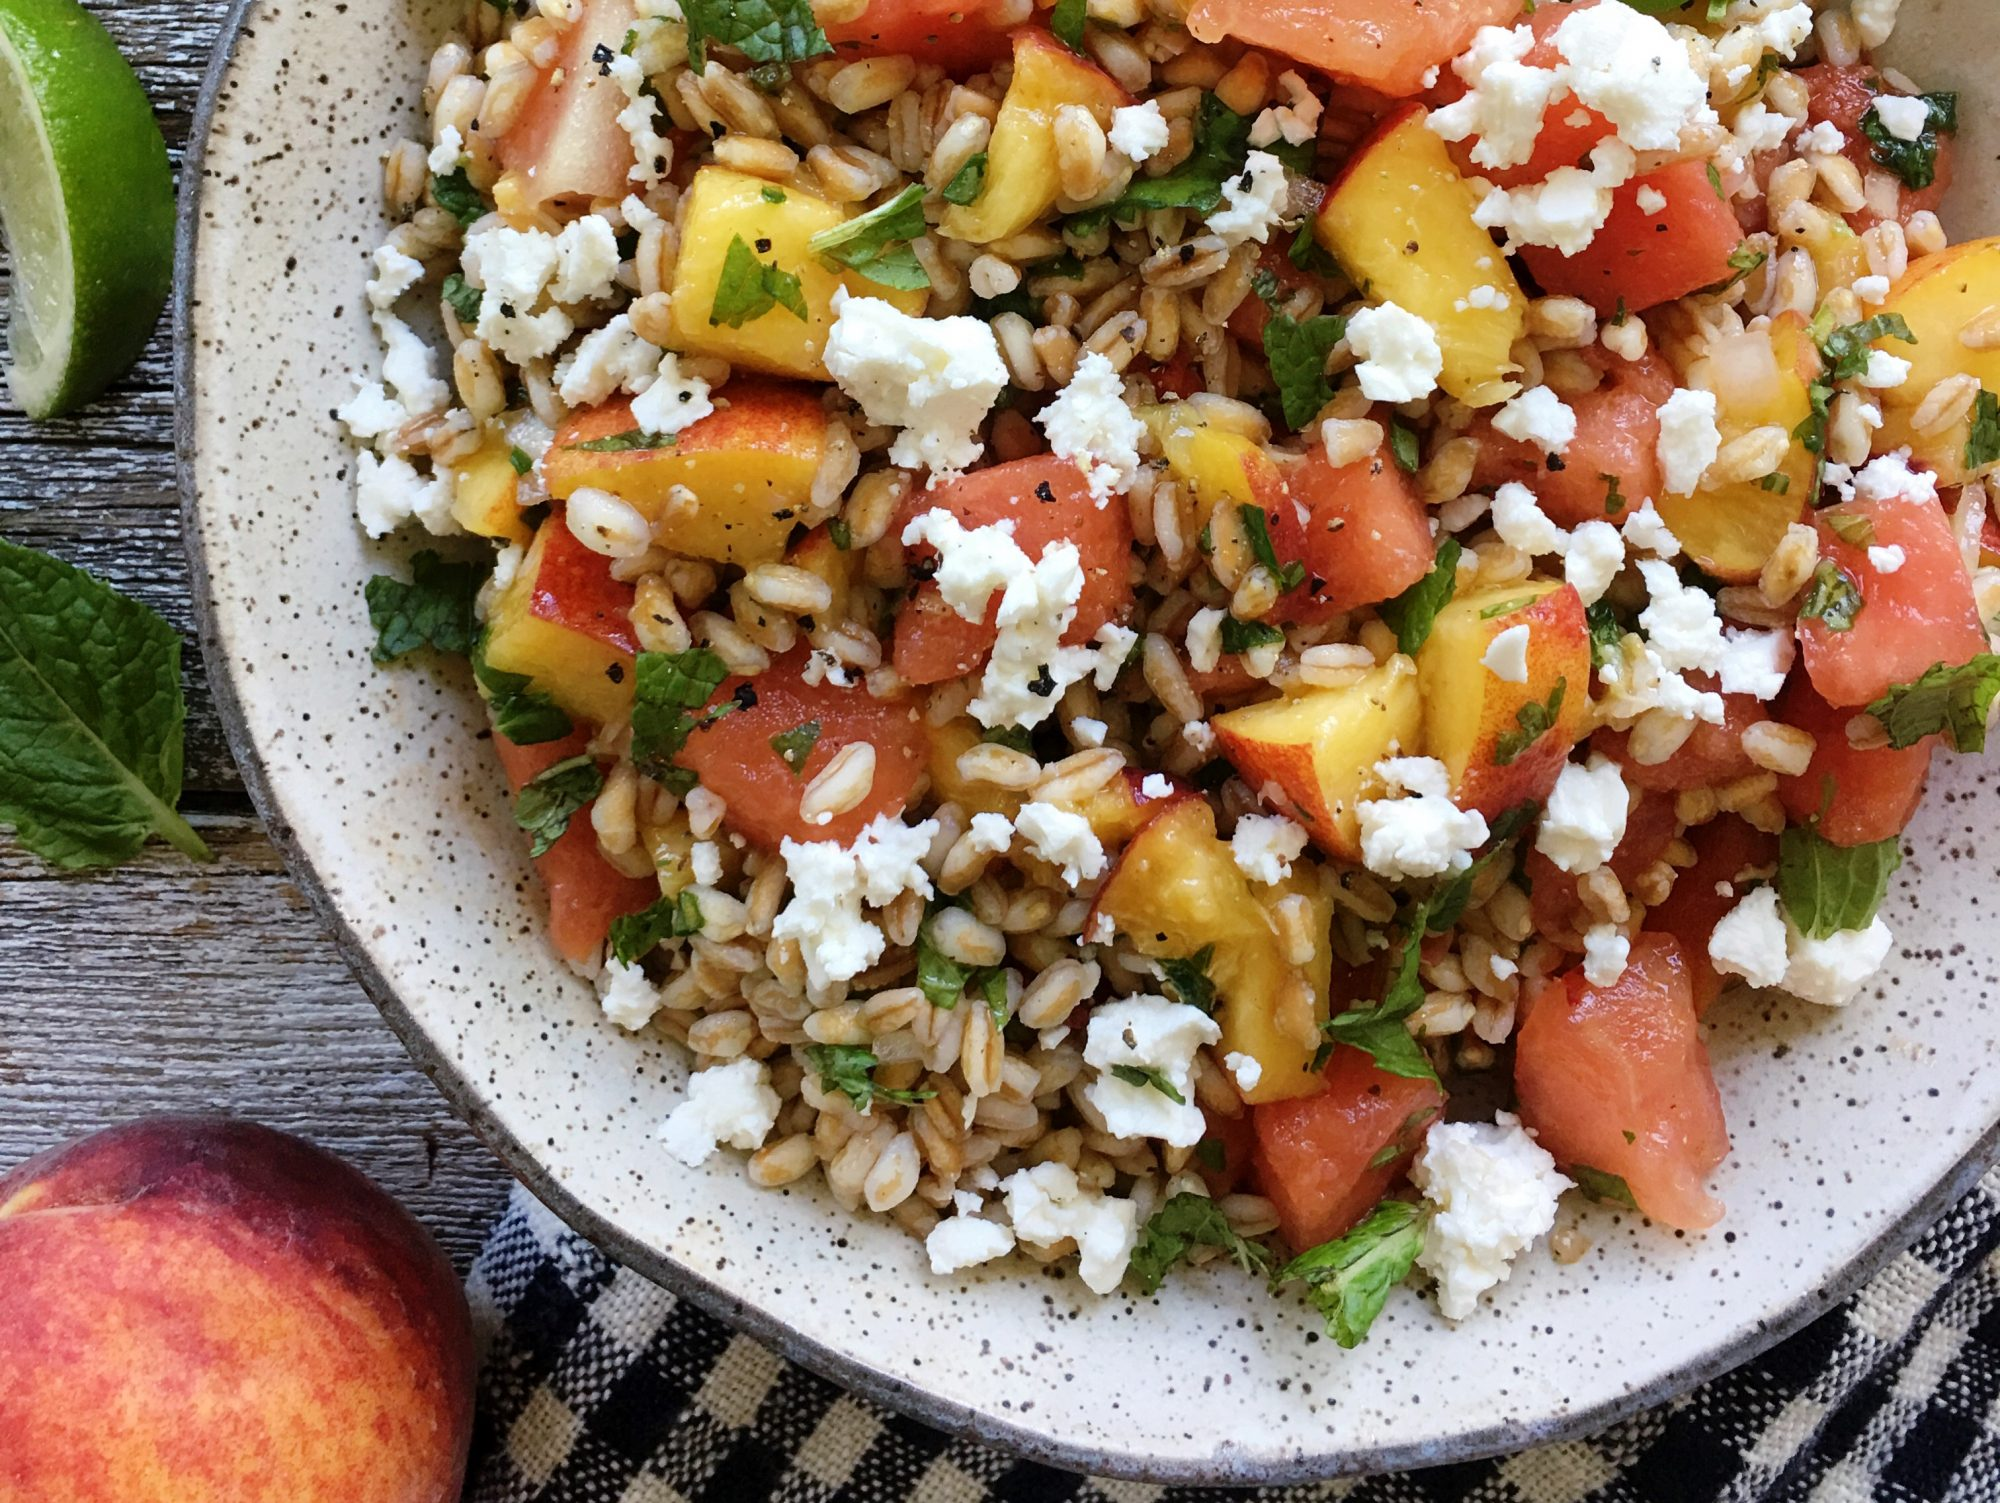 Toasted Farro Salad with Watermelon and Peaches